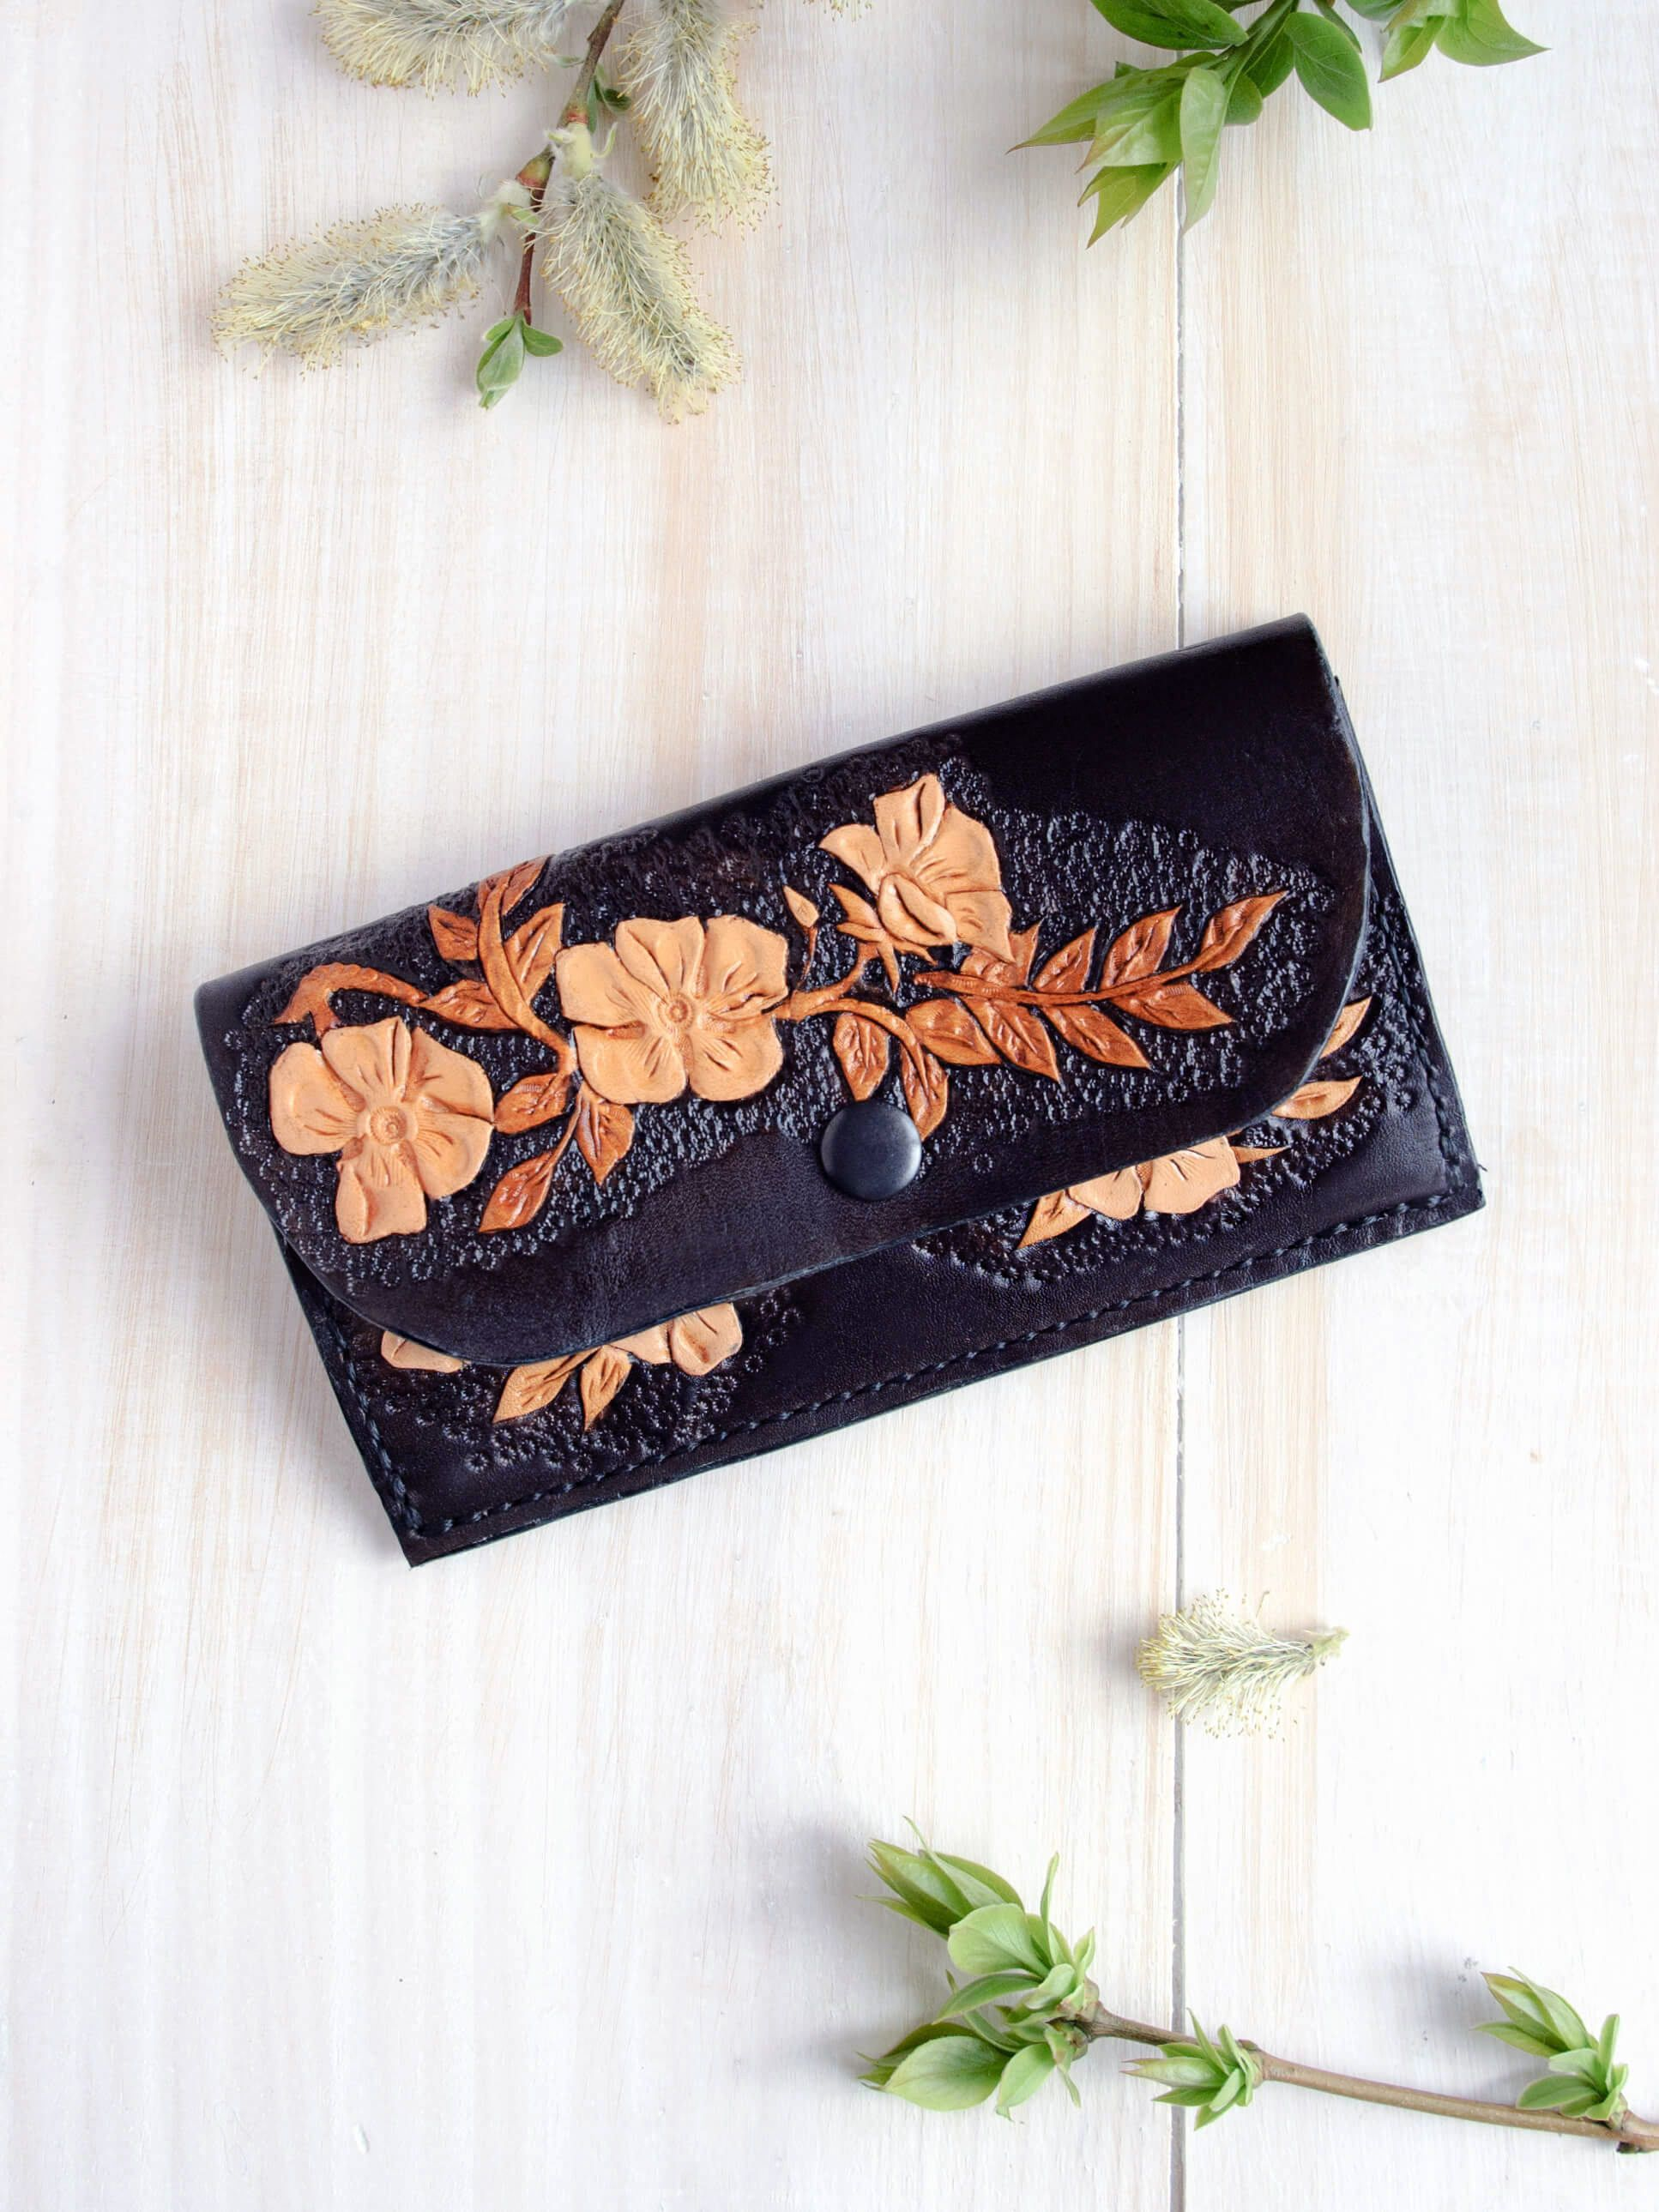 Black leather wallet with flowers gift for mom floral wallet black leather wallet with flowers gift for mom floral wallet black clutch womens wallet leather purse gift for her handmade wallet negle Image collections